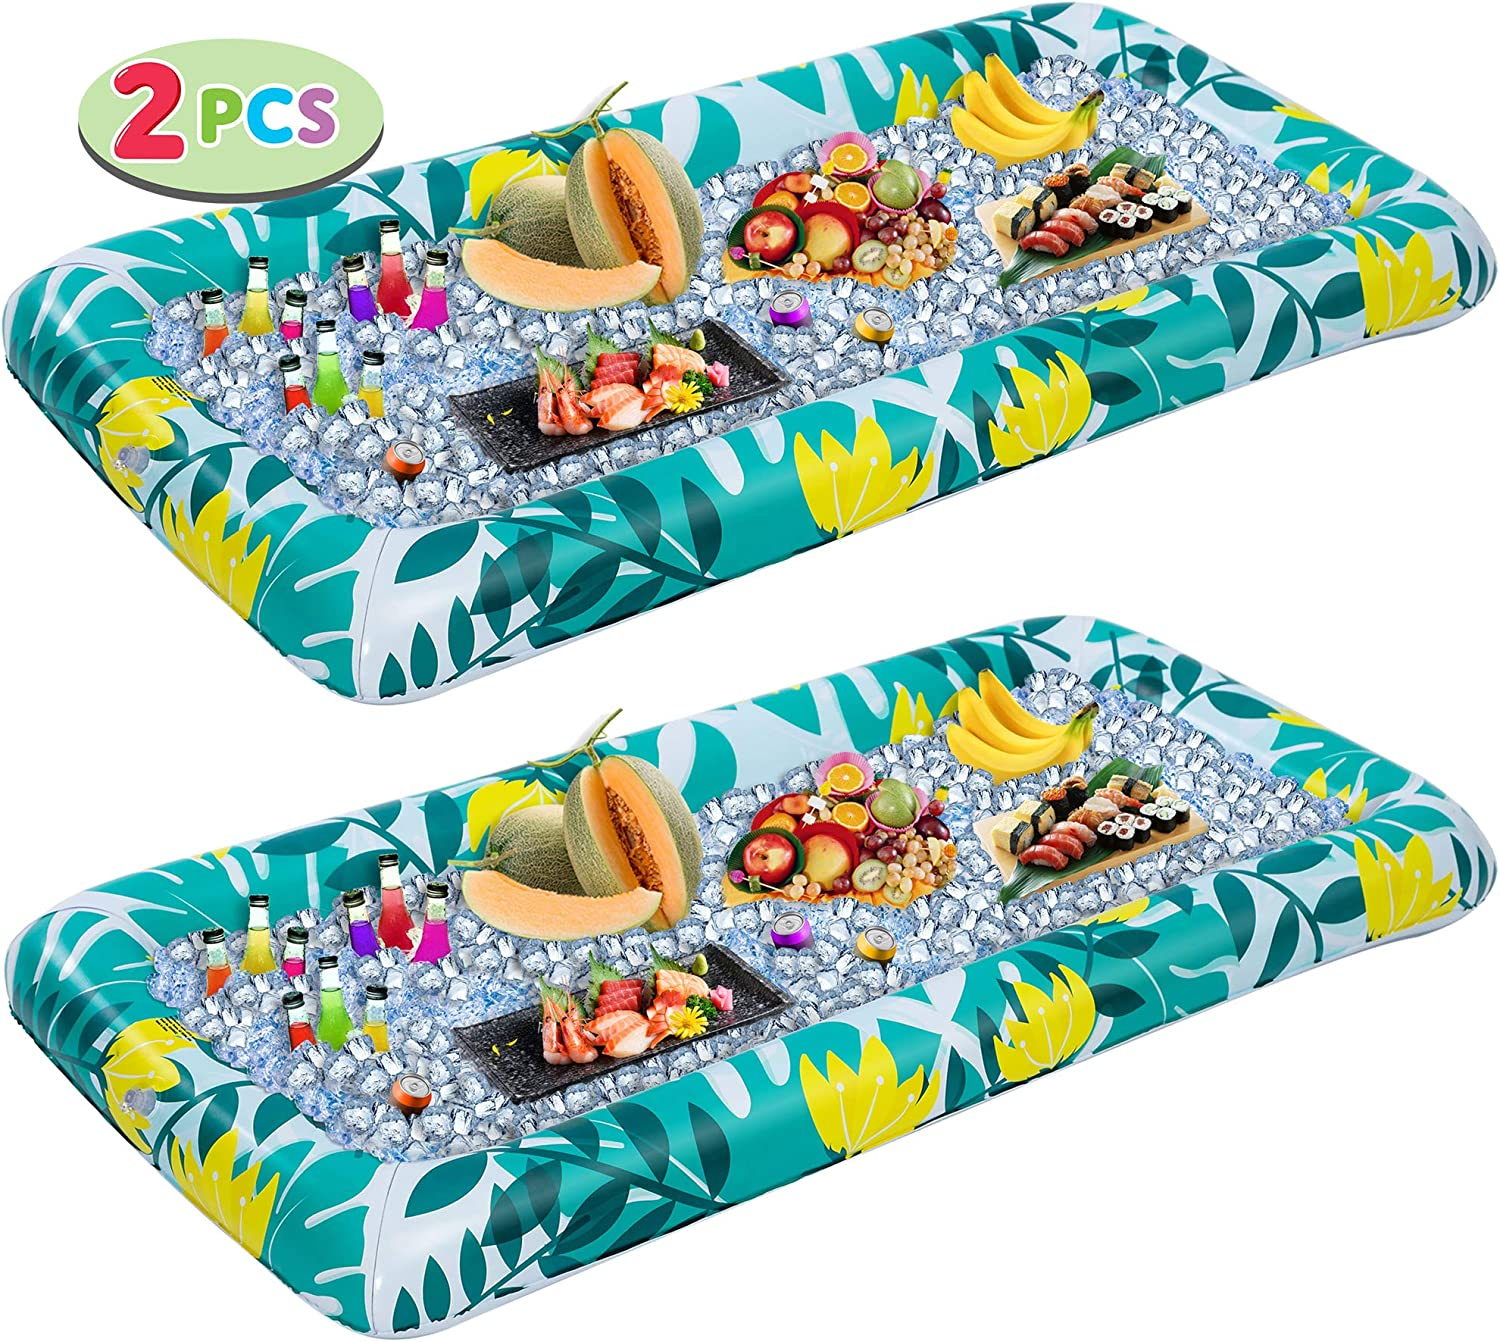 Inflatable Serving Bars with Drain Plug (2pcs), Fashion Pattern Inflatable Cooler Ice Buffet Salad Serving Trays Food Drink Holder for Indoor Outdoor Summer Beach Luau Party, Picnic, and Pool Party